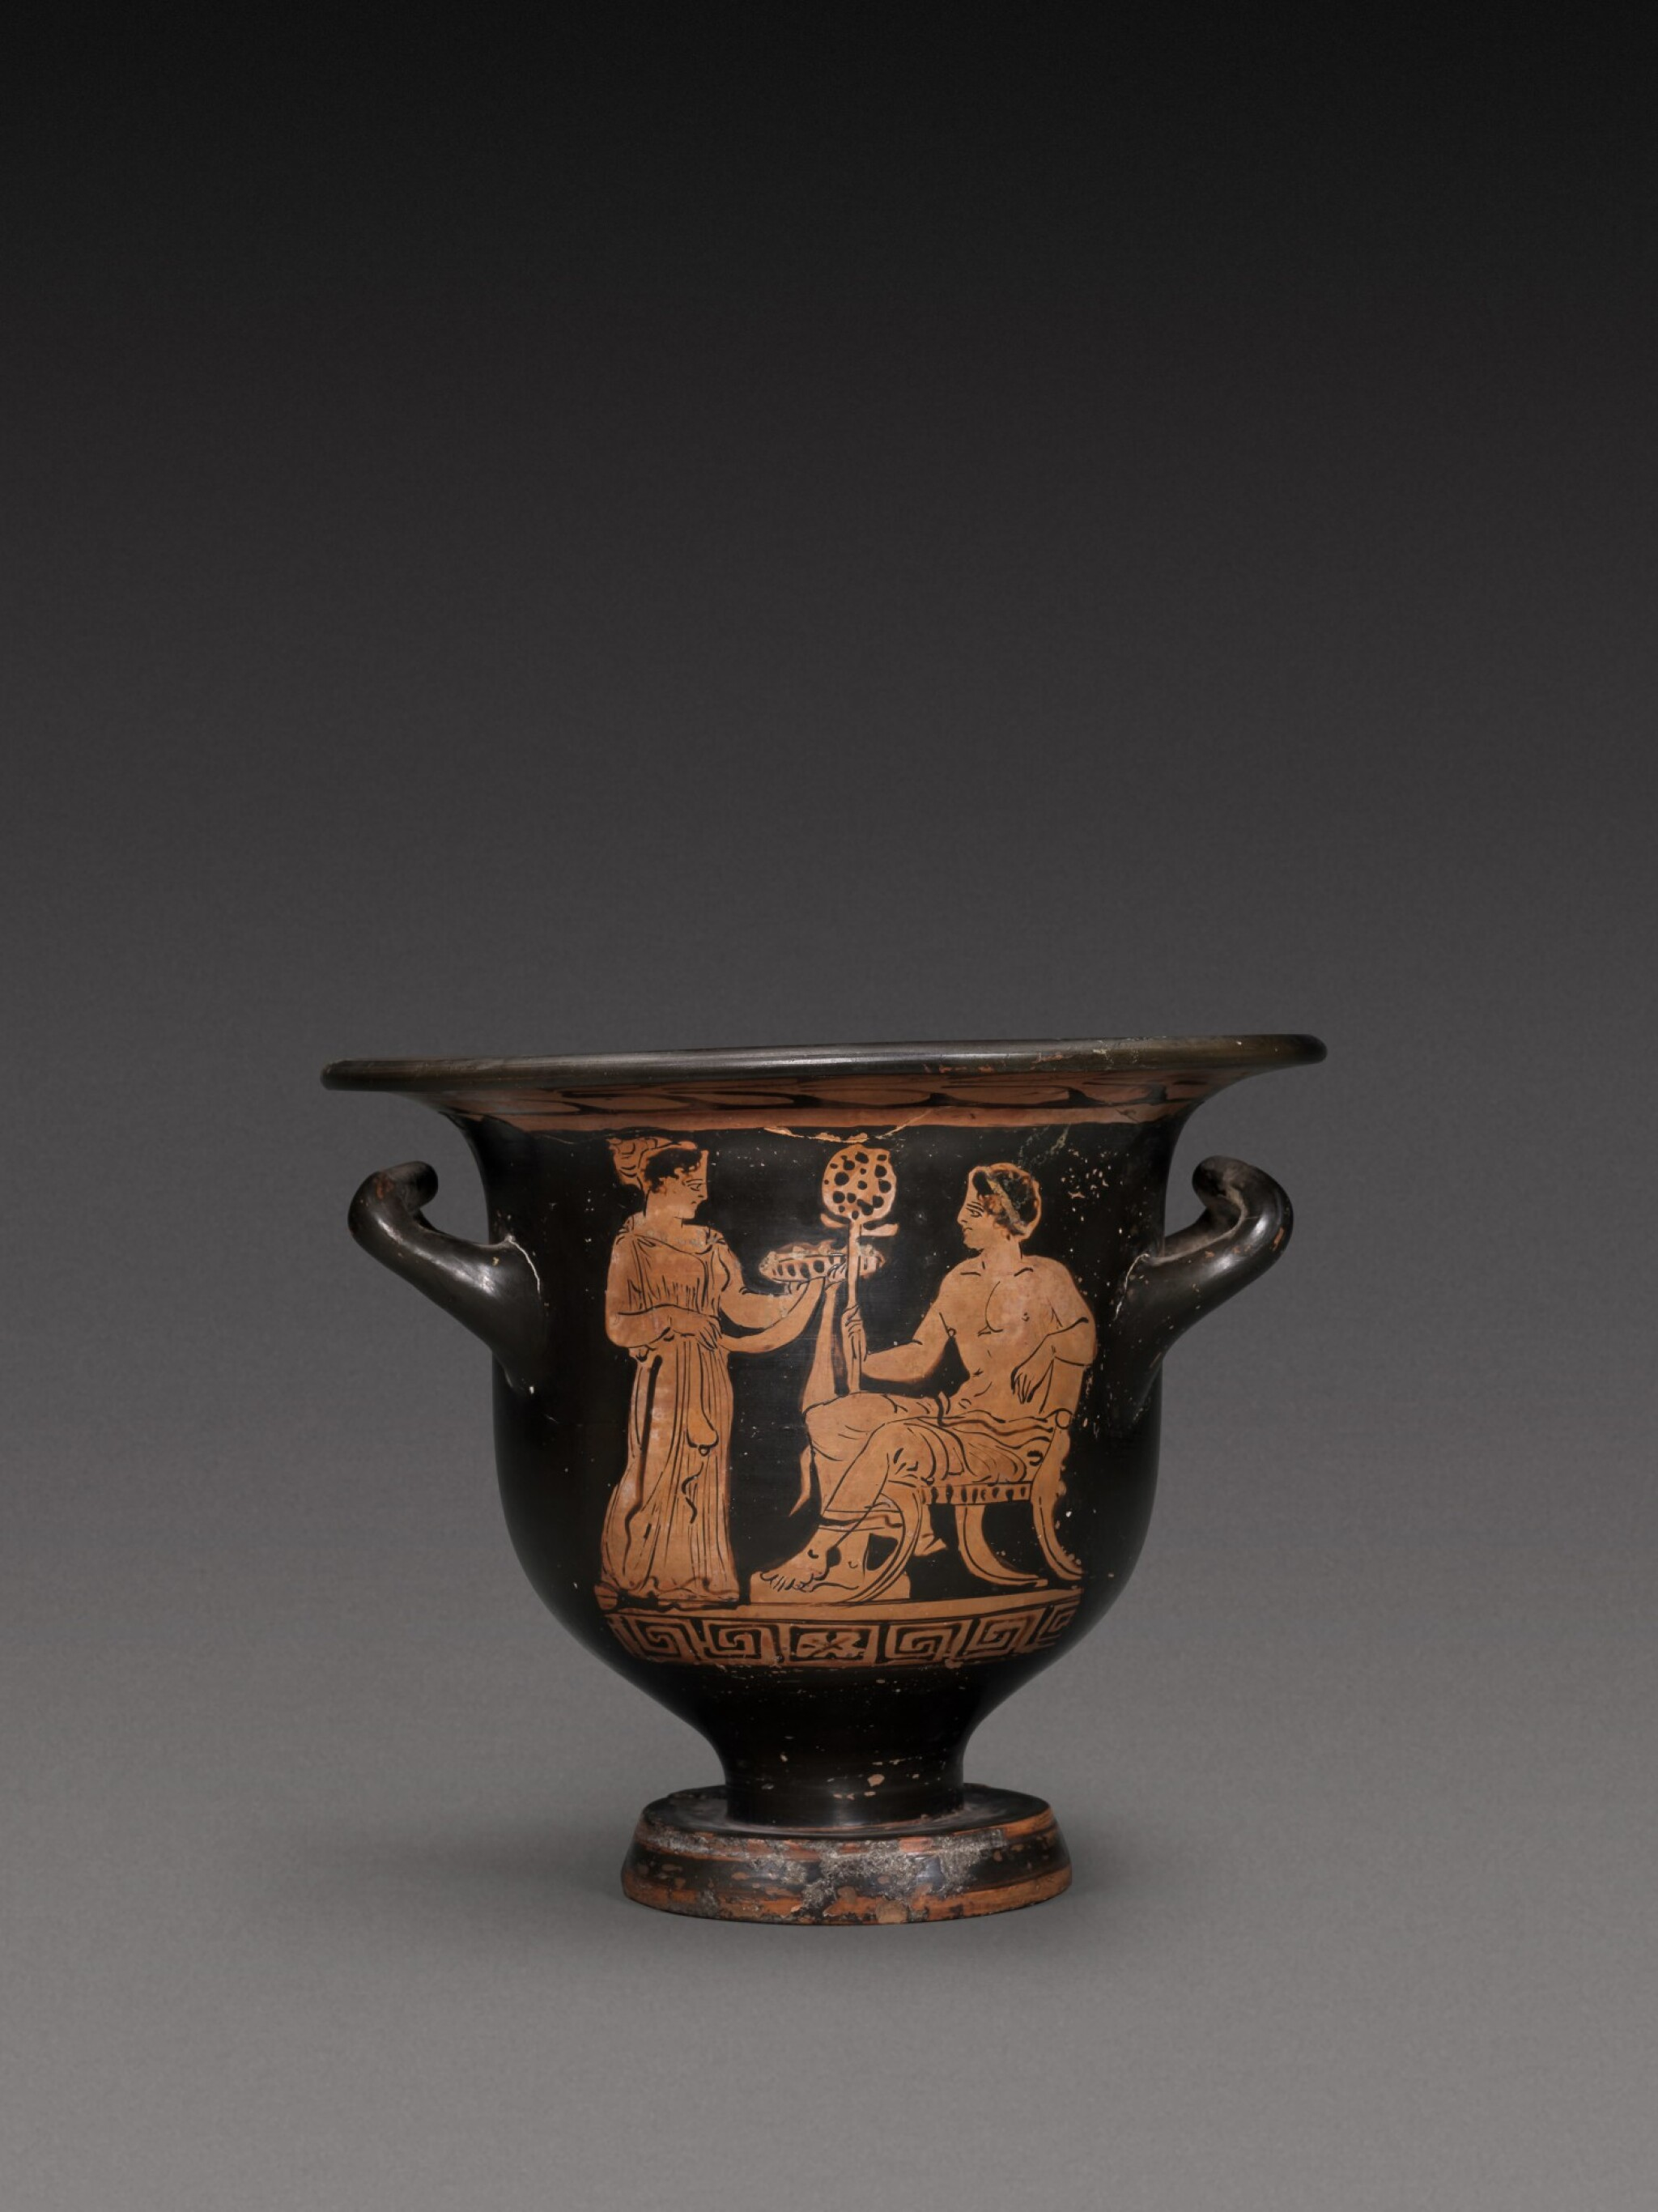 View 1 of Lot 59. An Apulian Red-figured Bell Krater, circa 350-340 B.C..